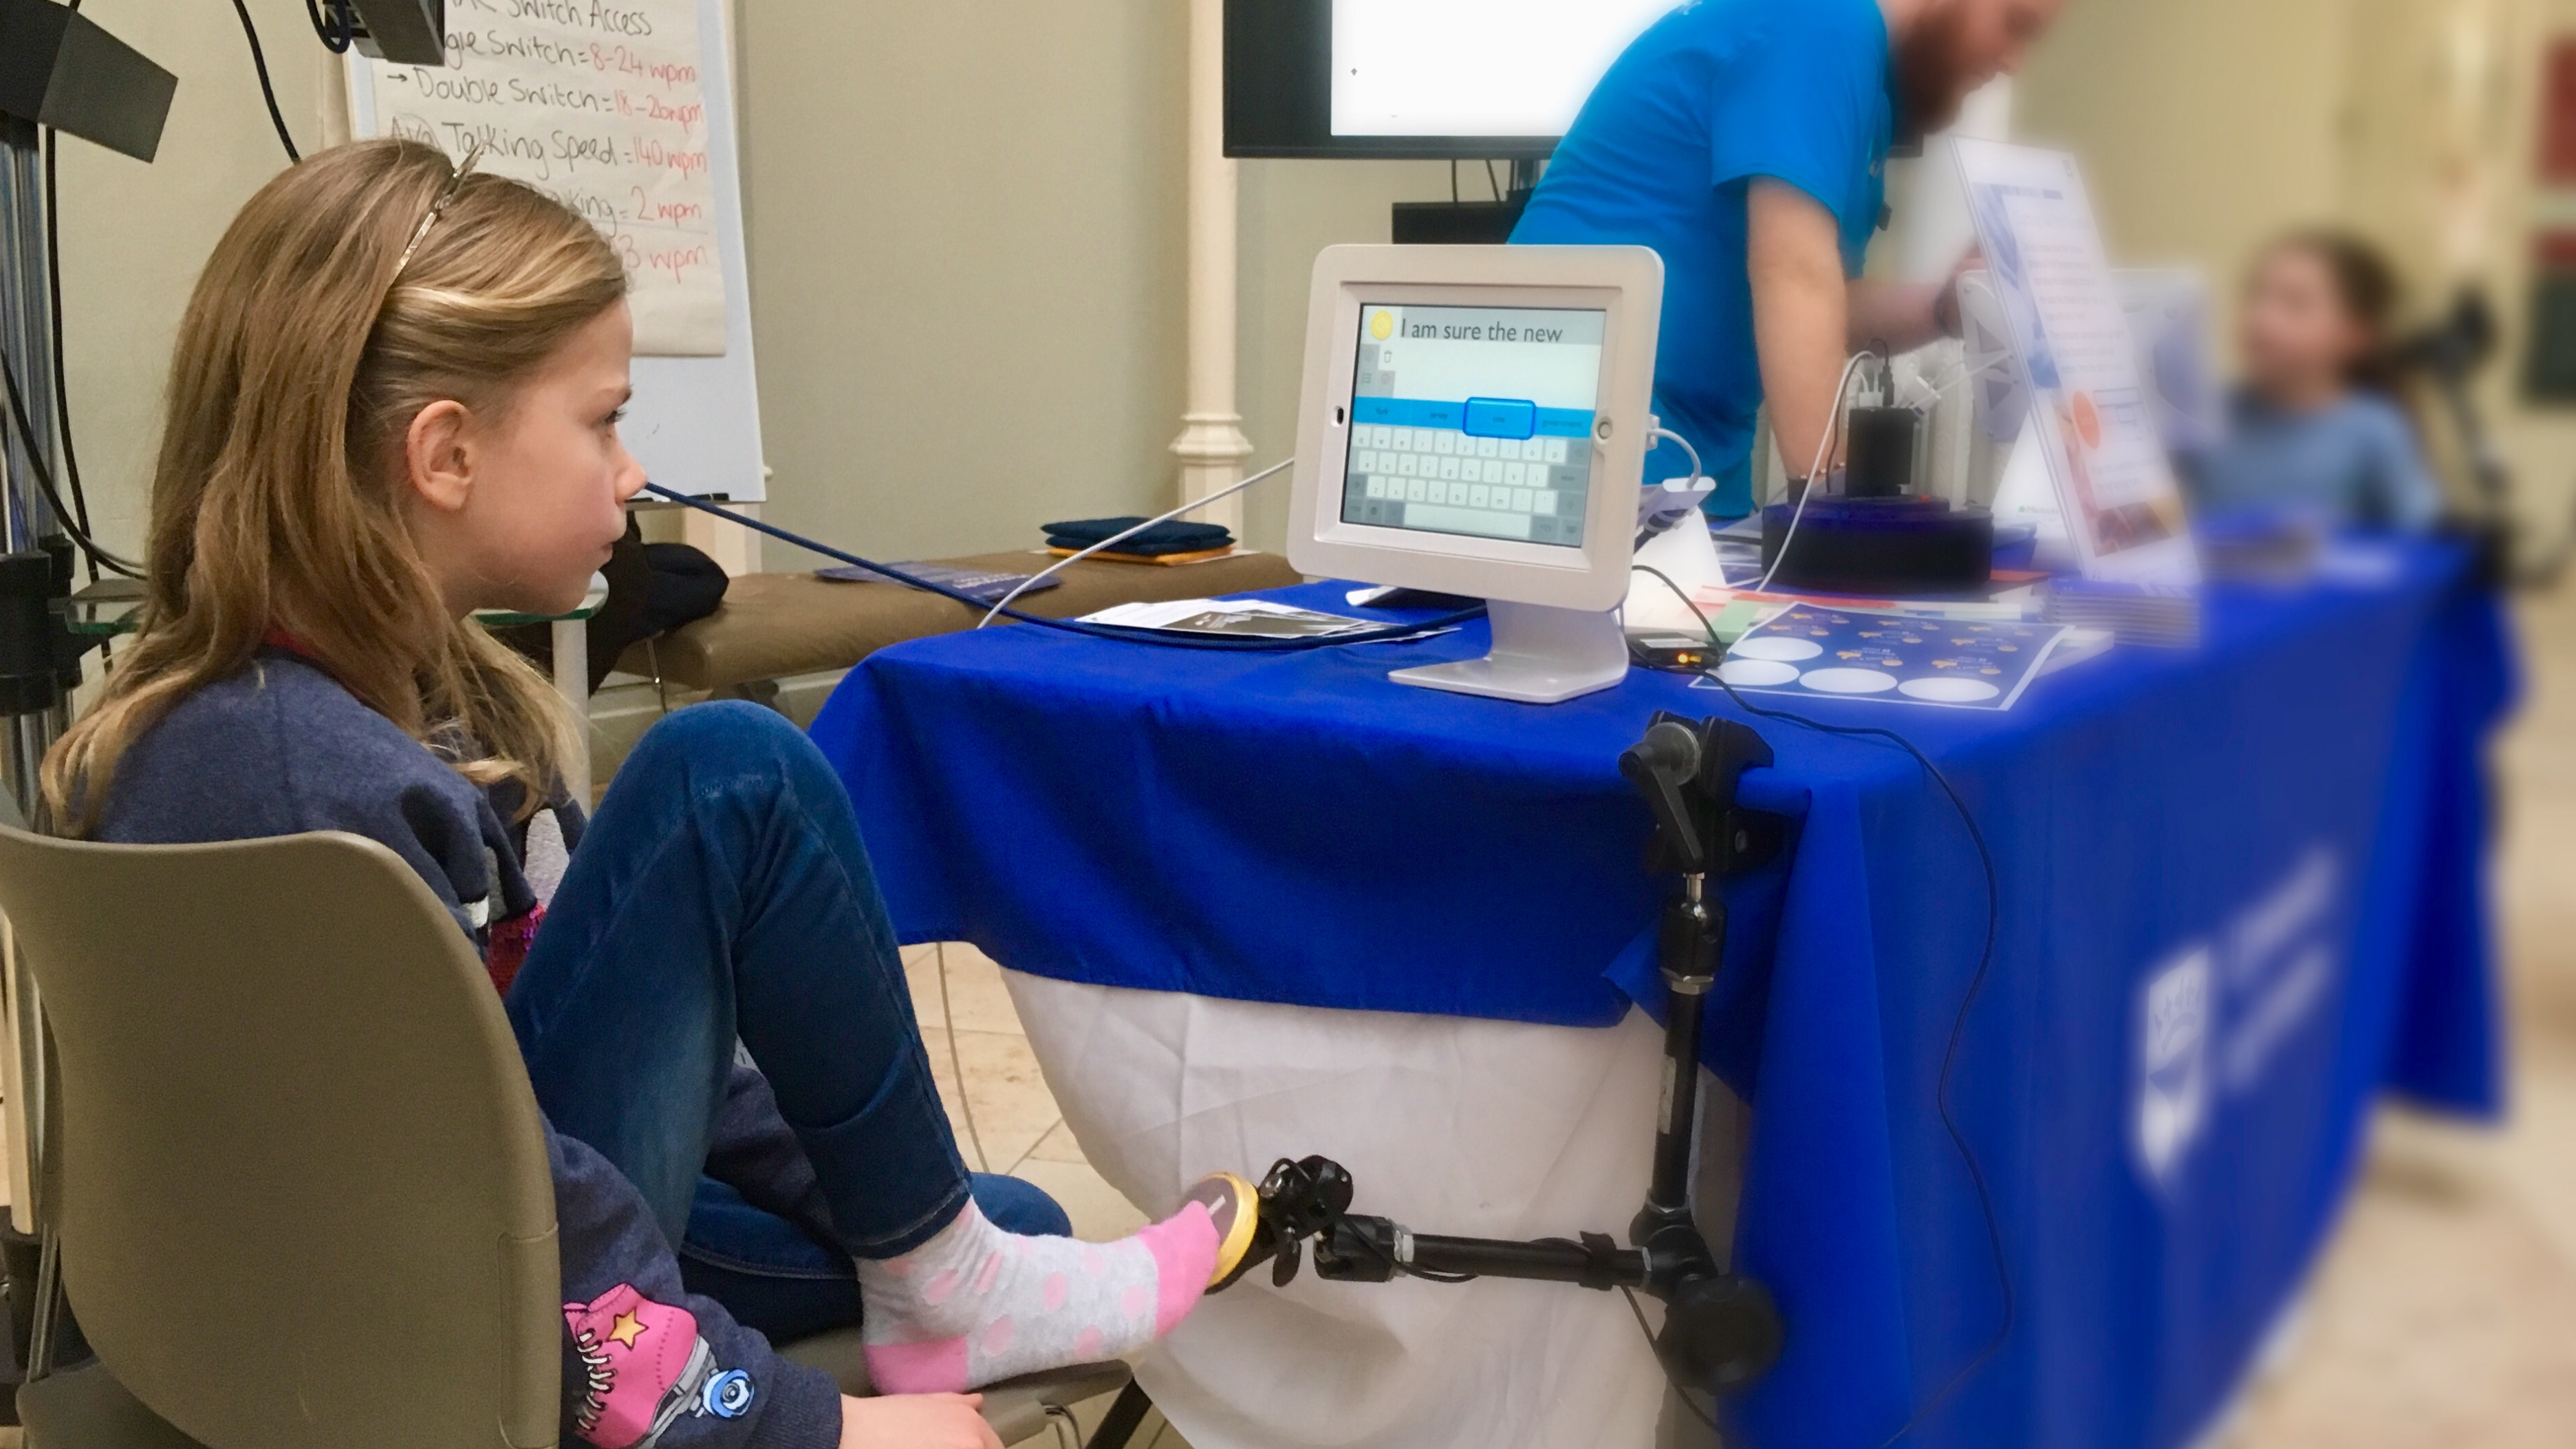 A girl tries switch scanning using her toe to access an iPad with a communication app.